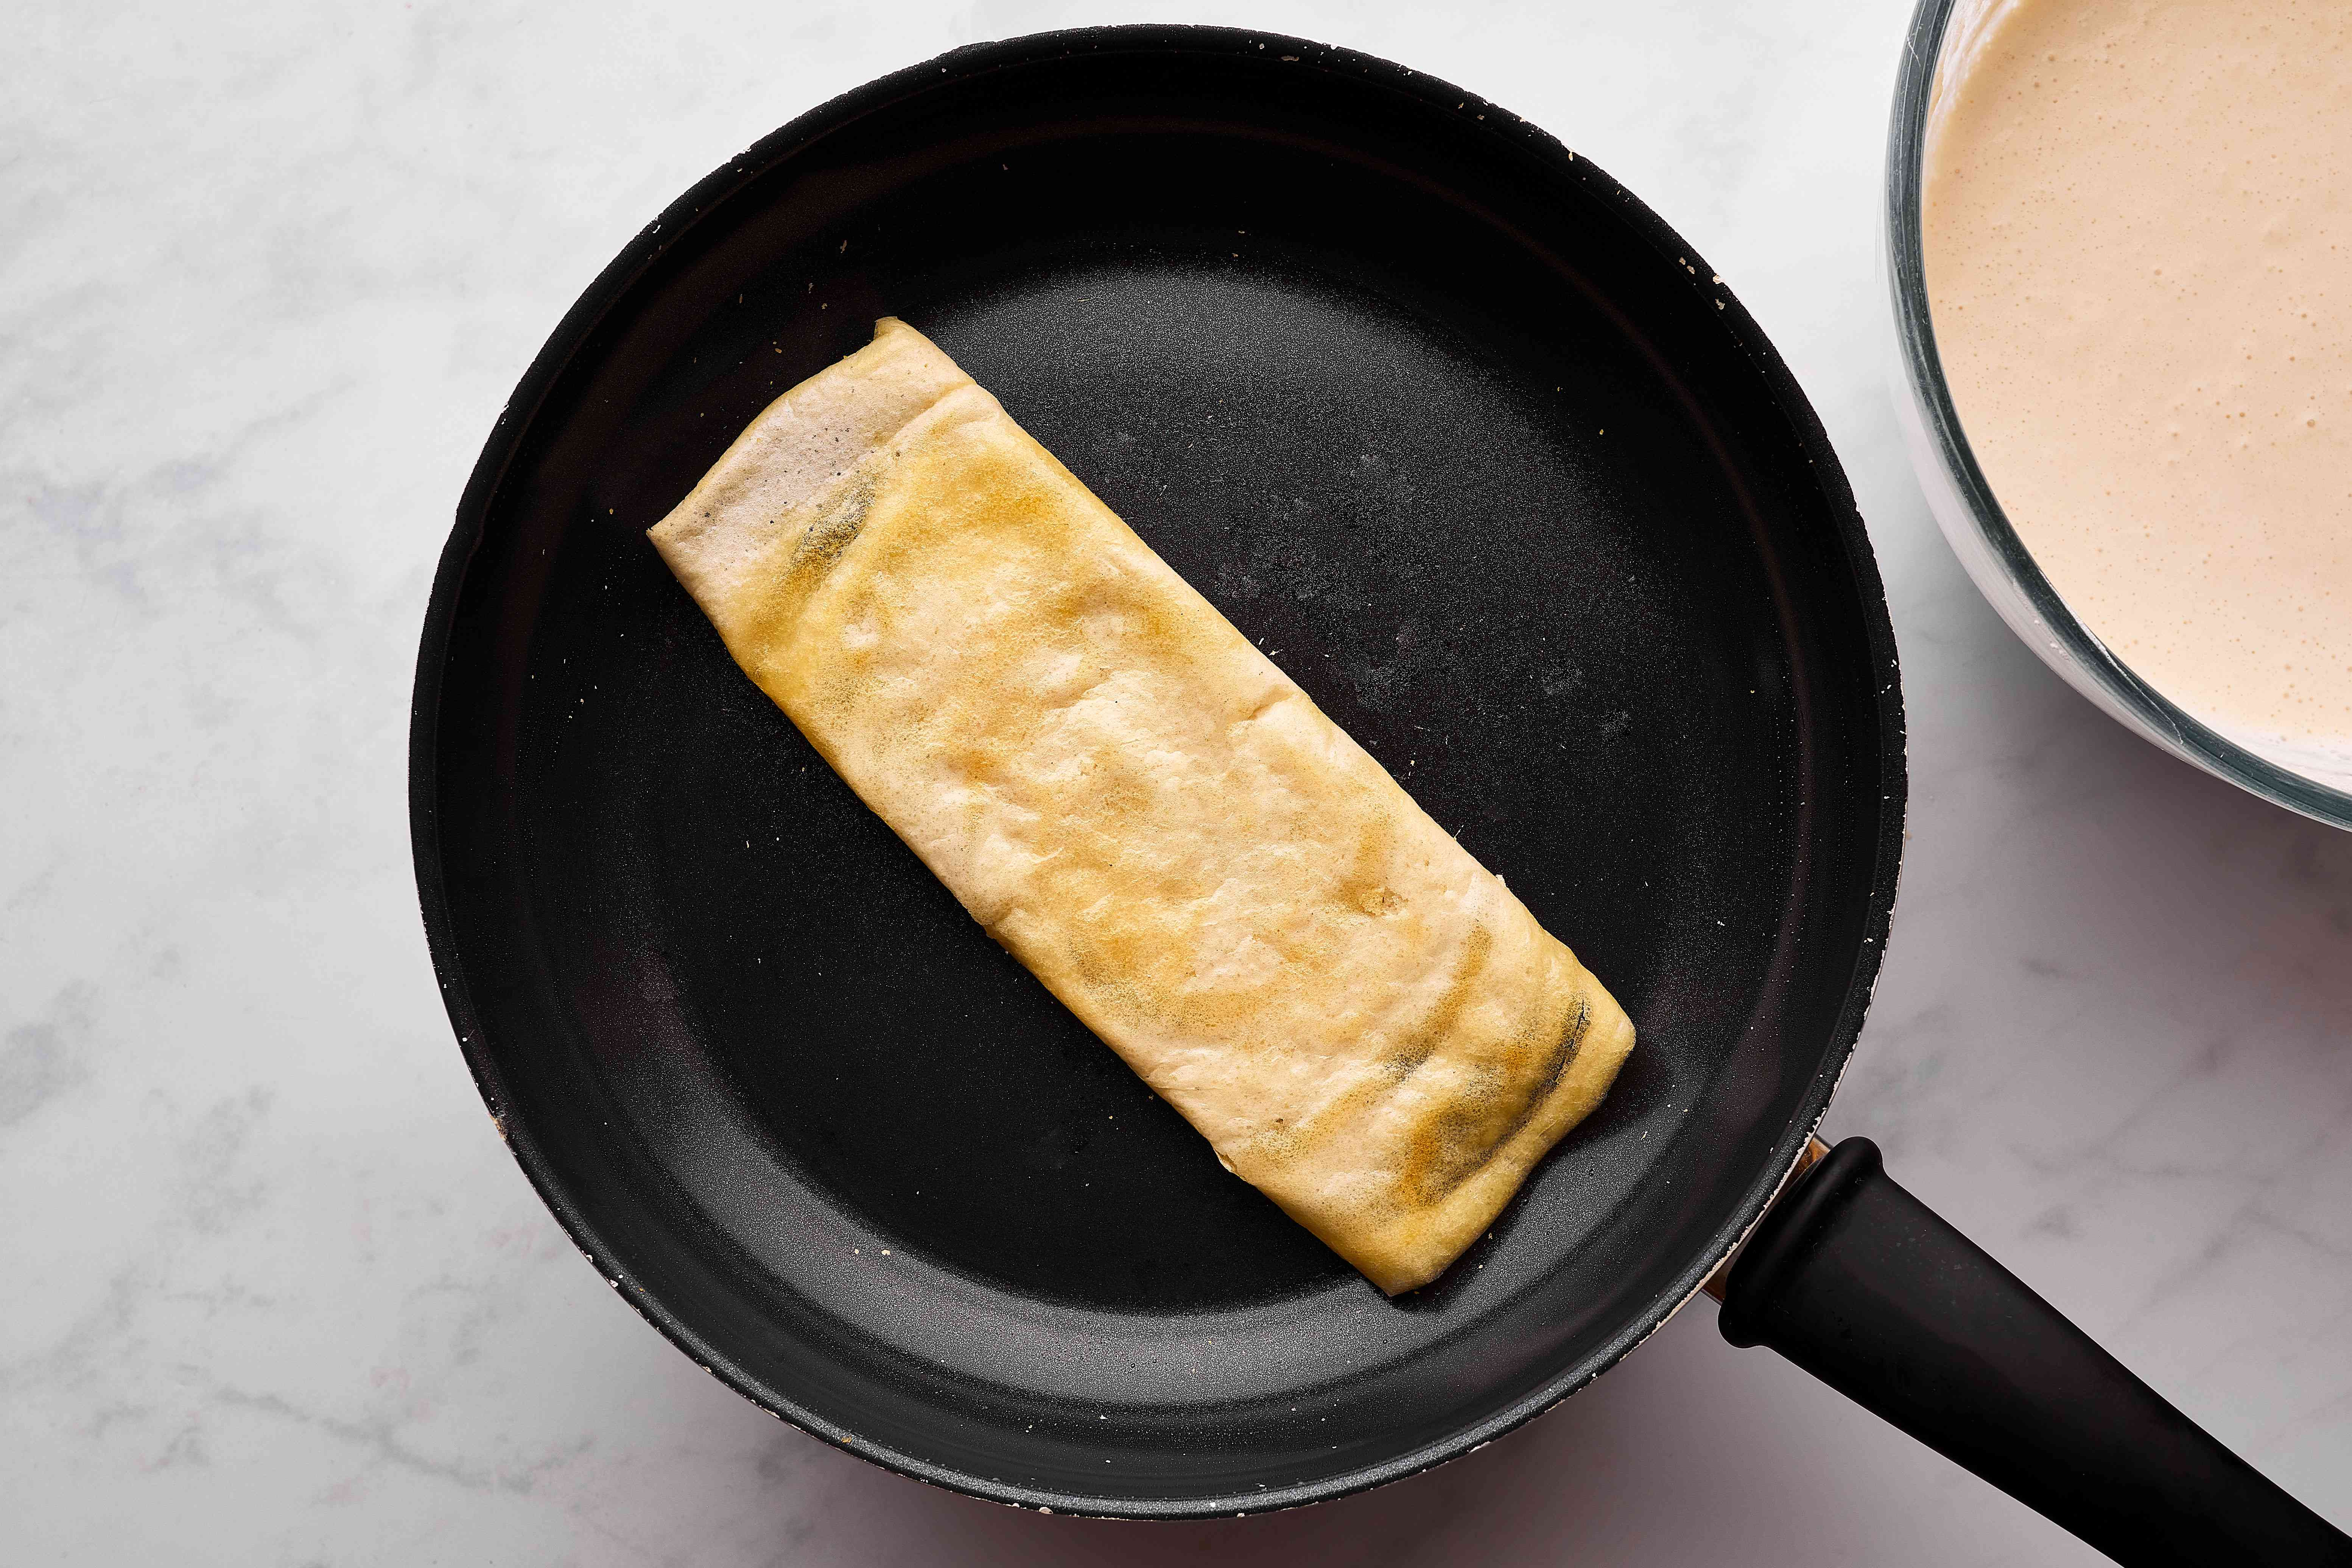 Folded dosa in a pan